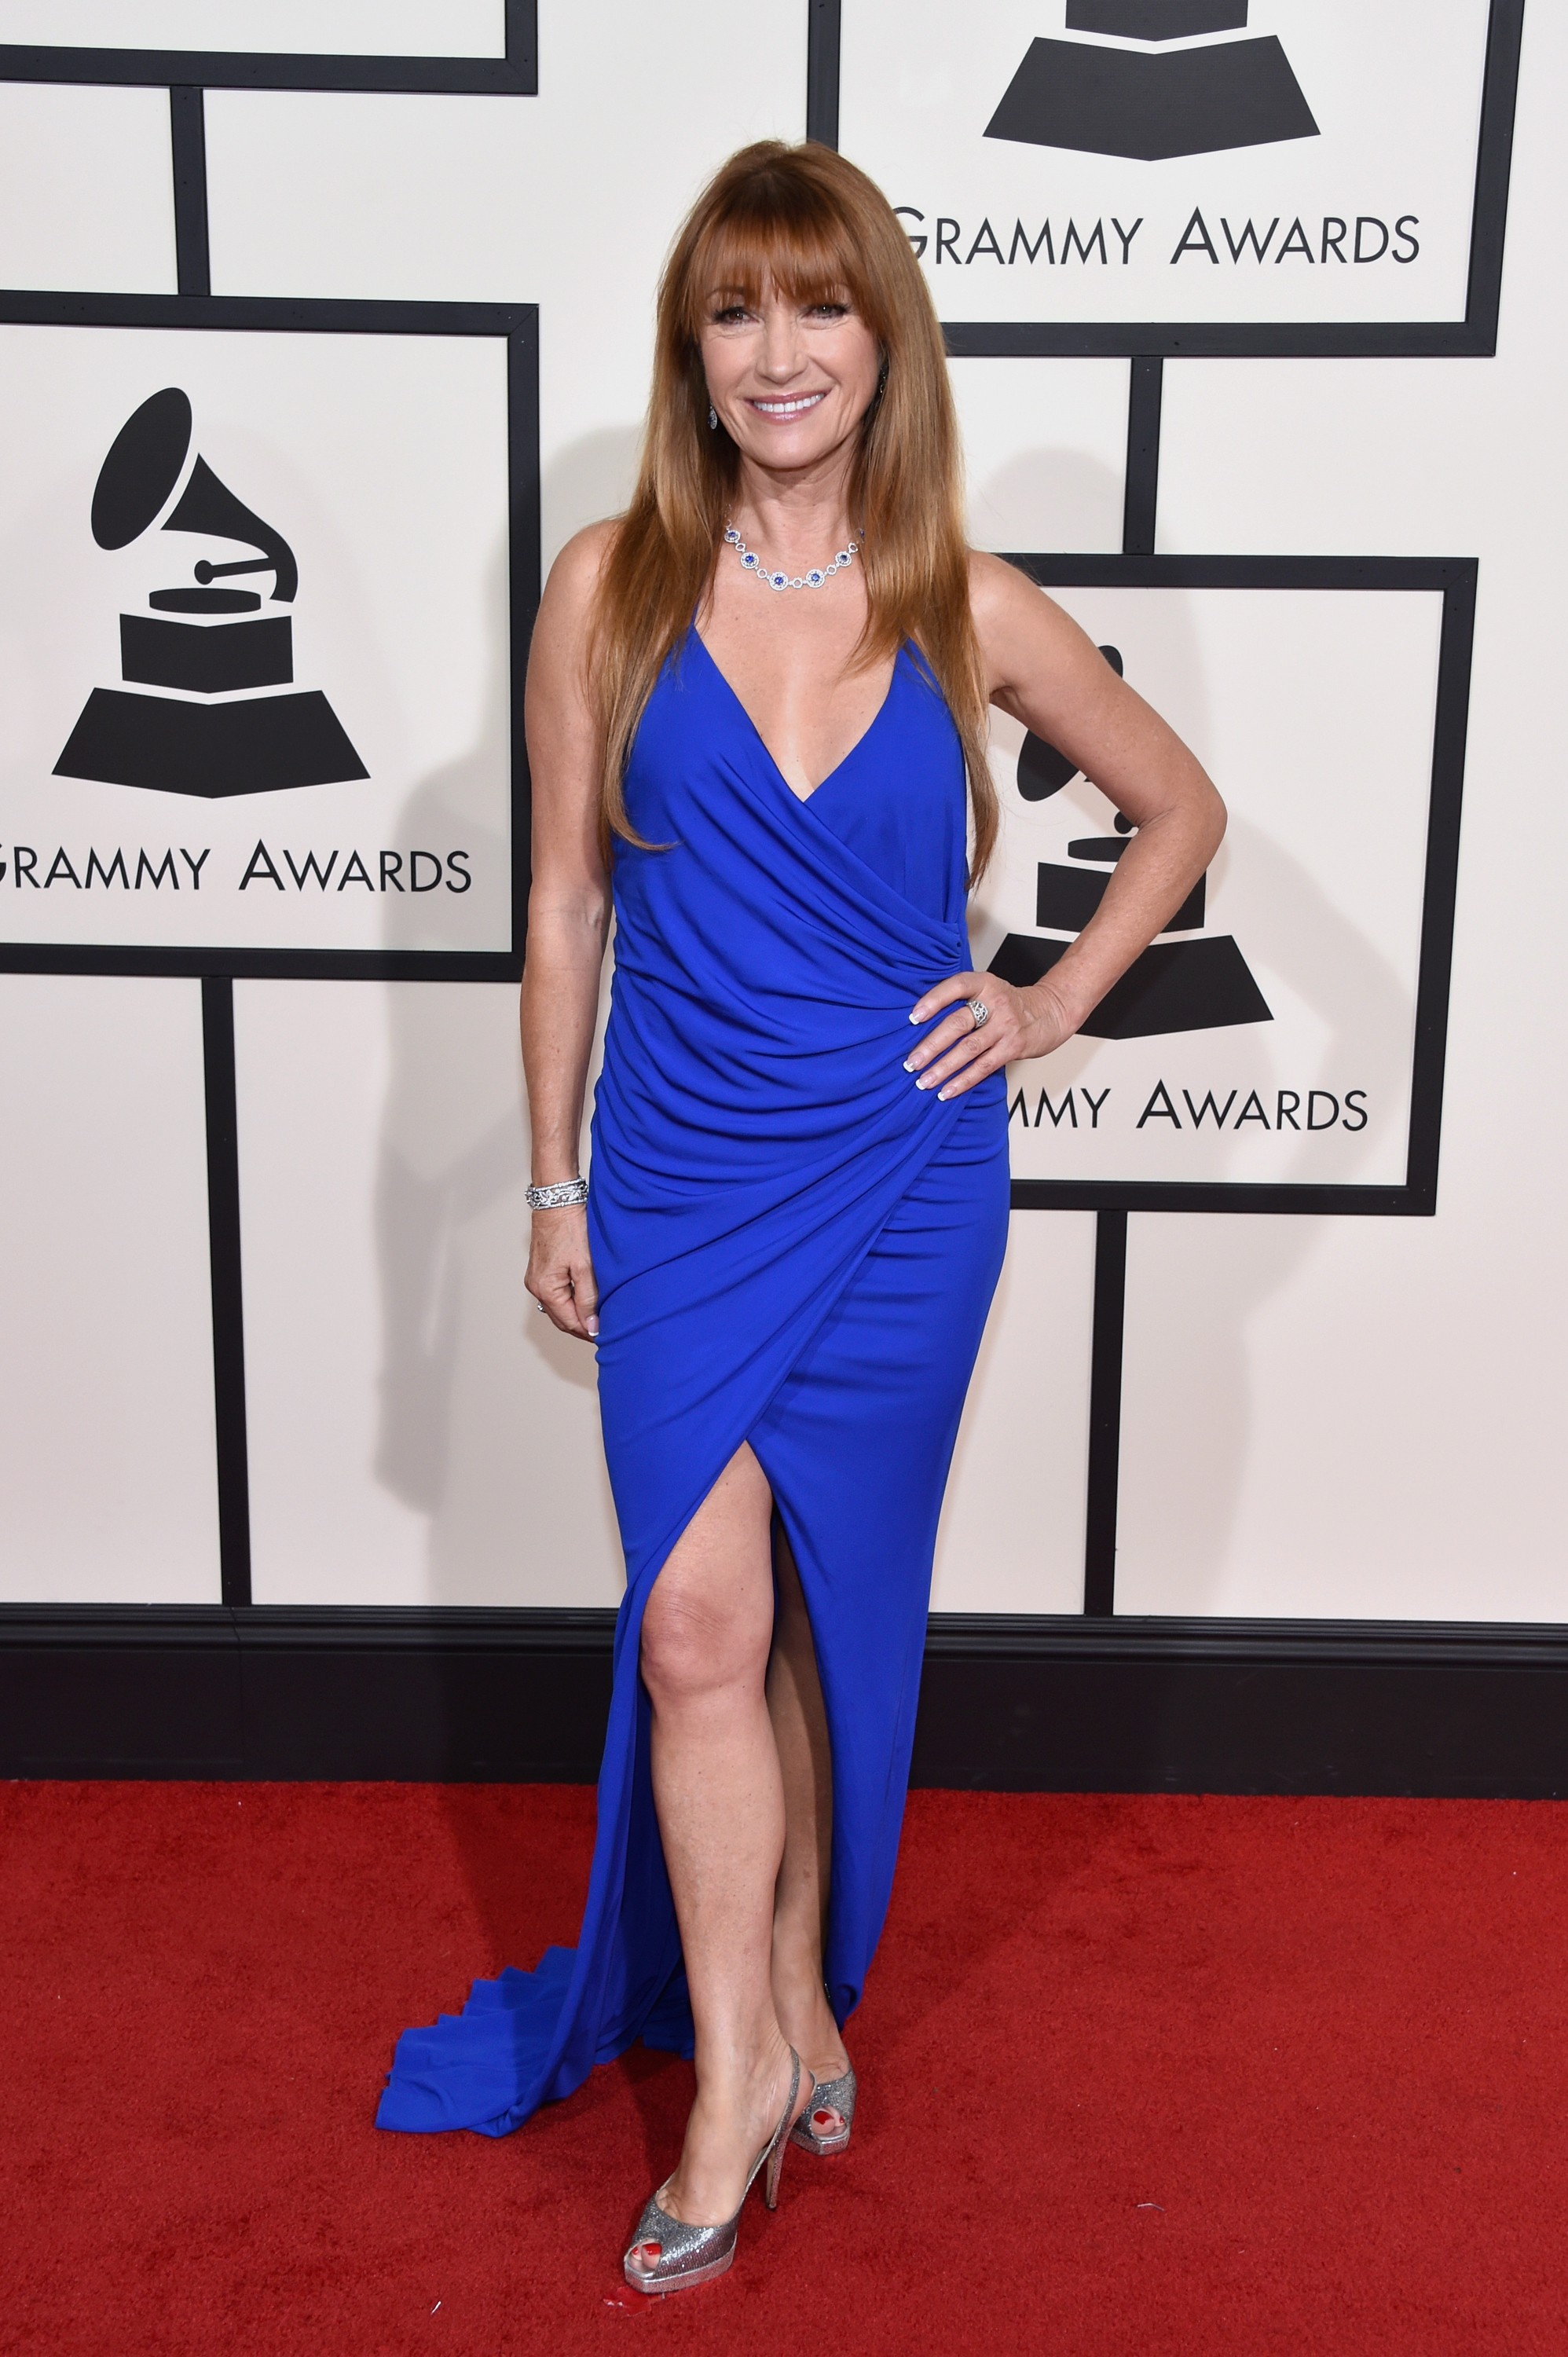 Jane Seymour attends the 58th GRAMMY Awards at Staples Center on Feb. 15, 2016 in Los Angeles.